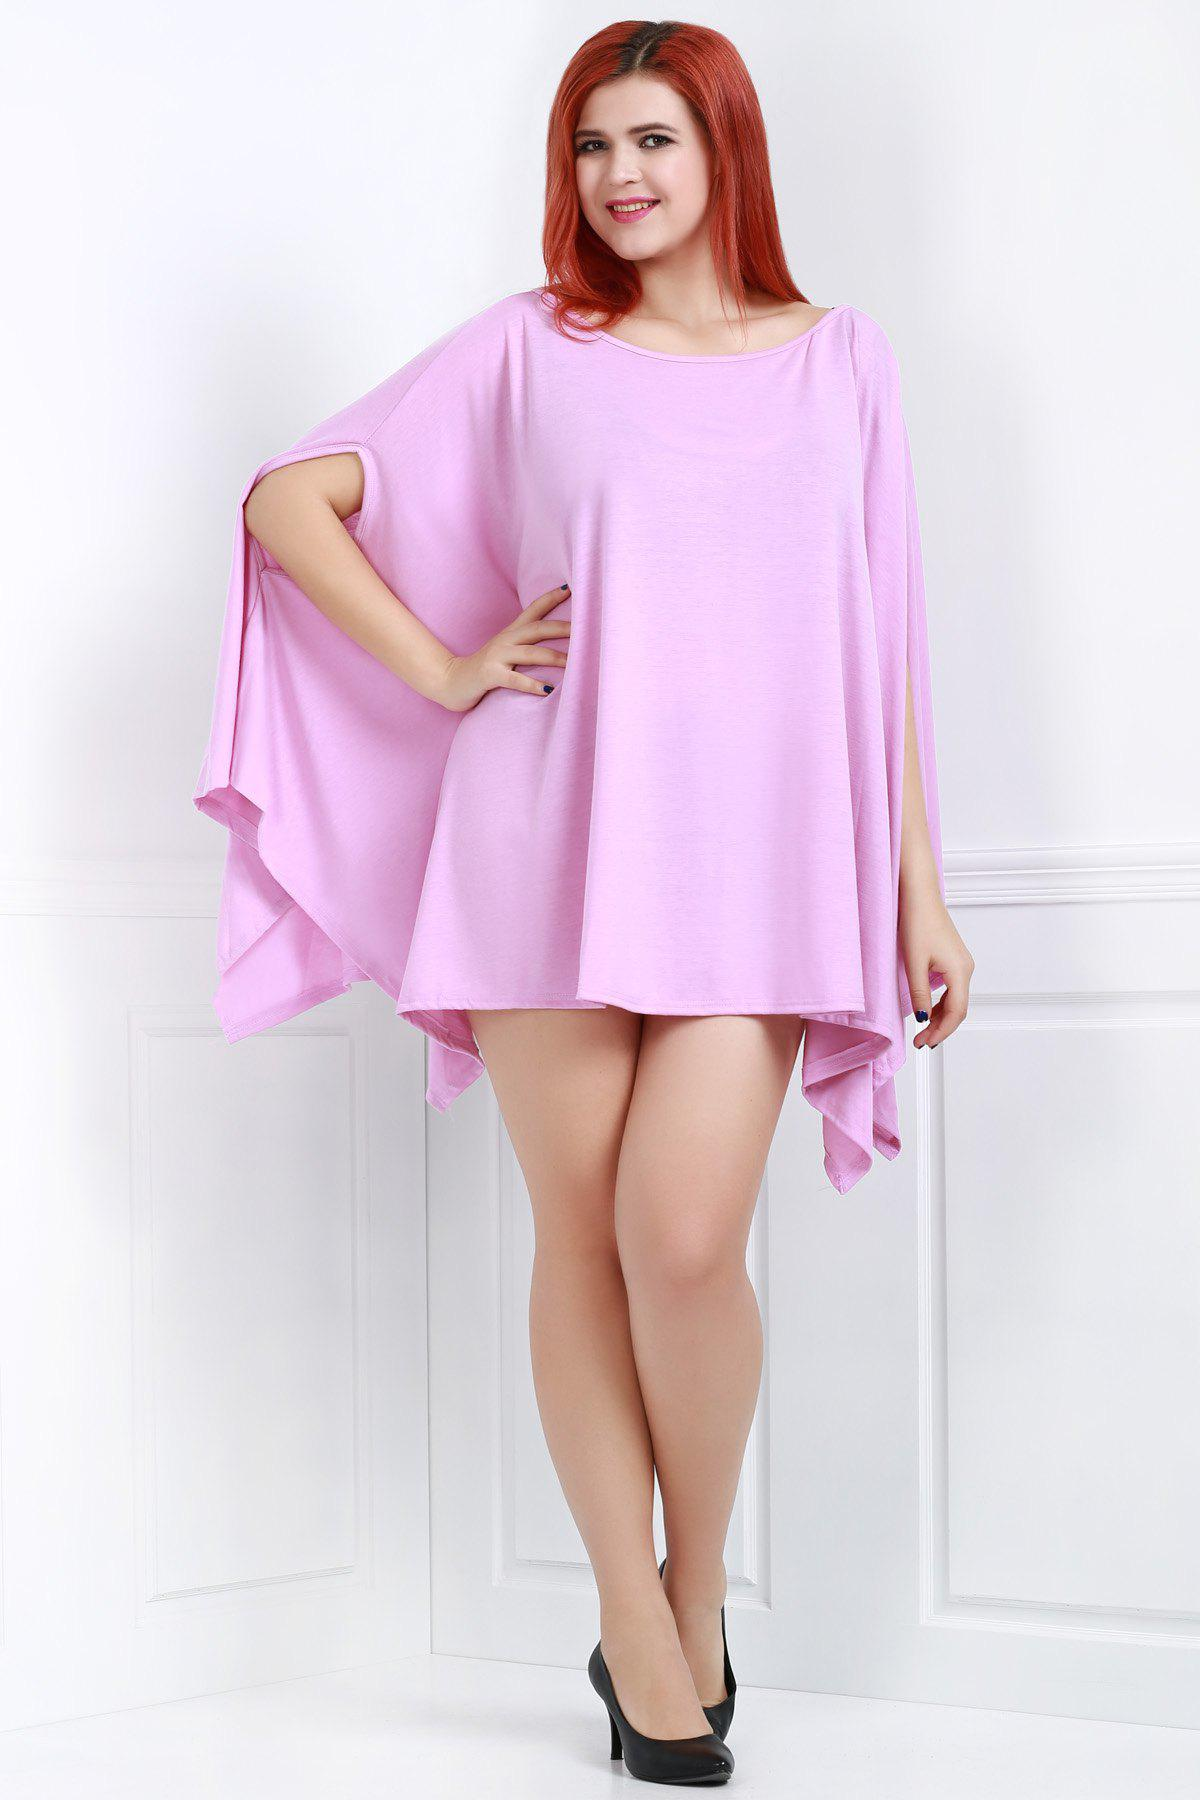 2018 handkerchief plus size caped top with batwing sleeve for Handkerchief shirt plus size